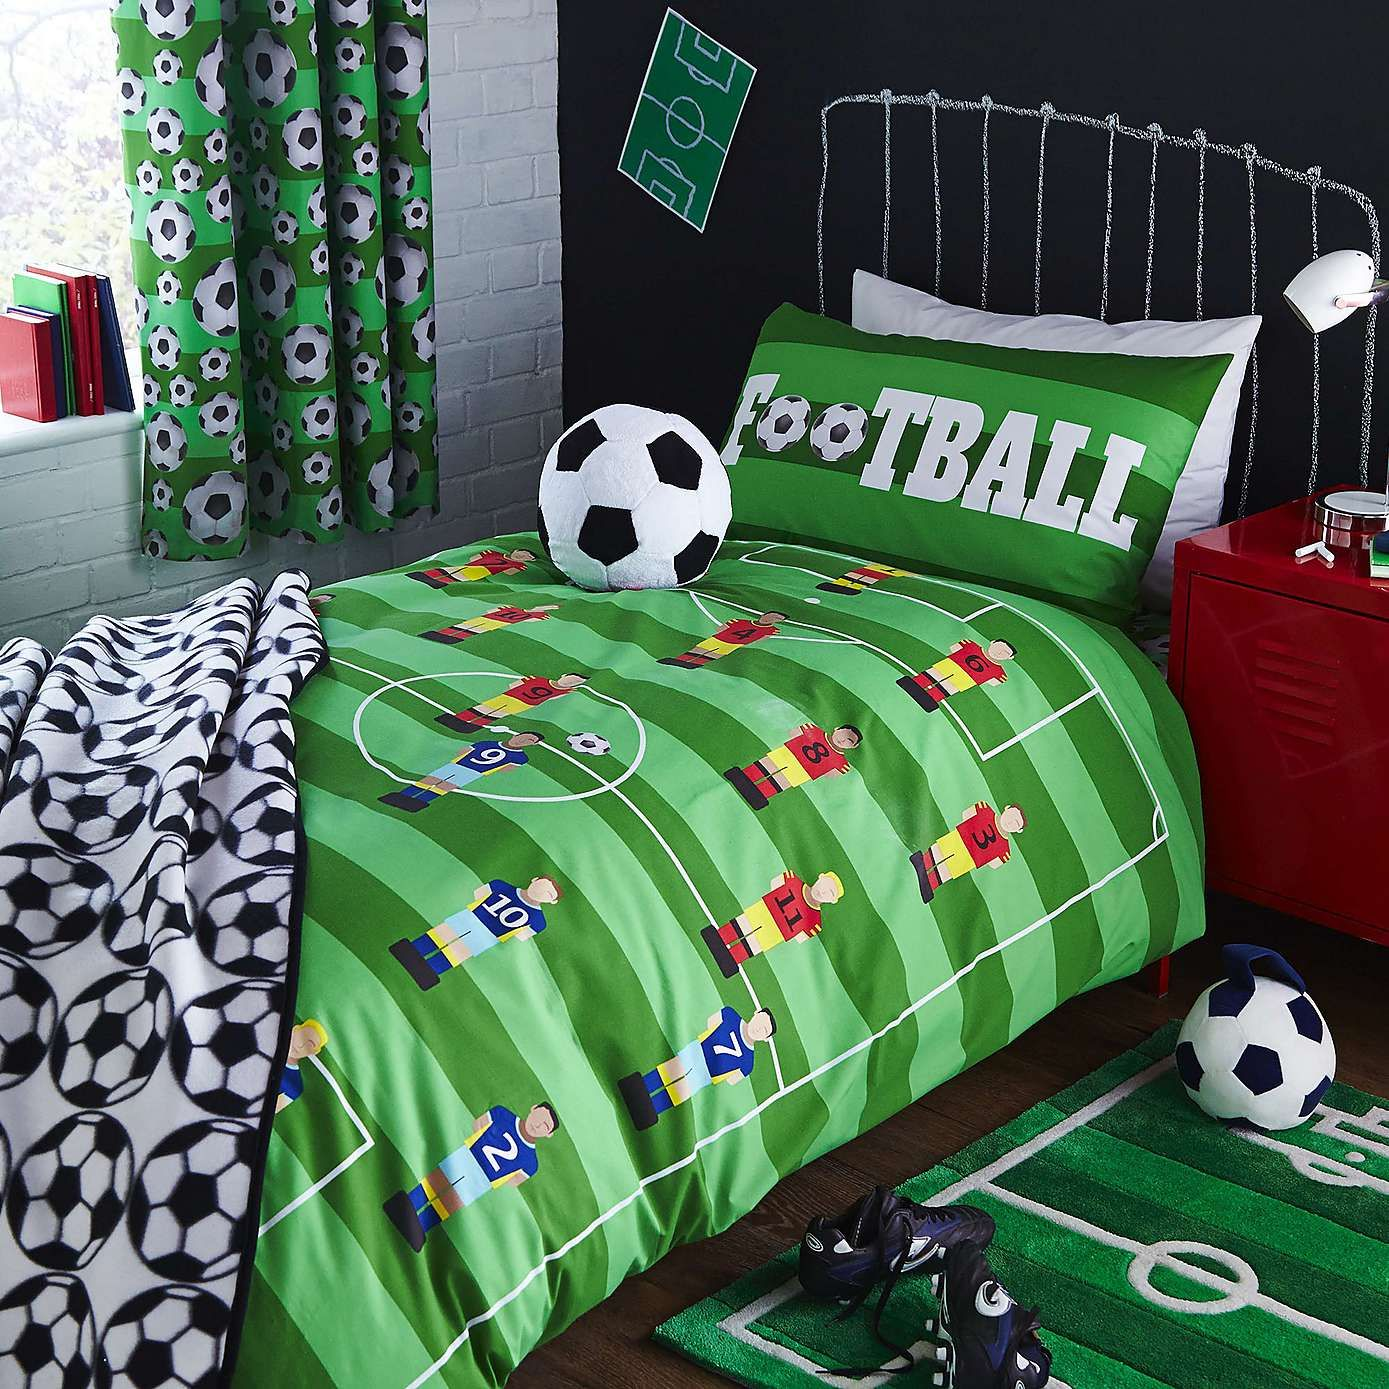 Football Duvet Cover And Pillowcase Set Football Bedroom